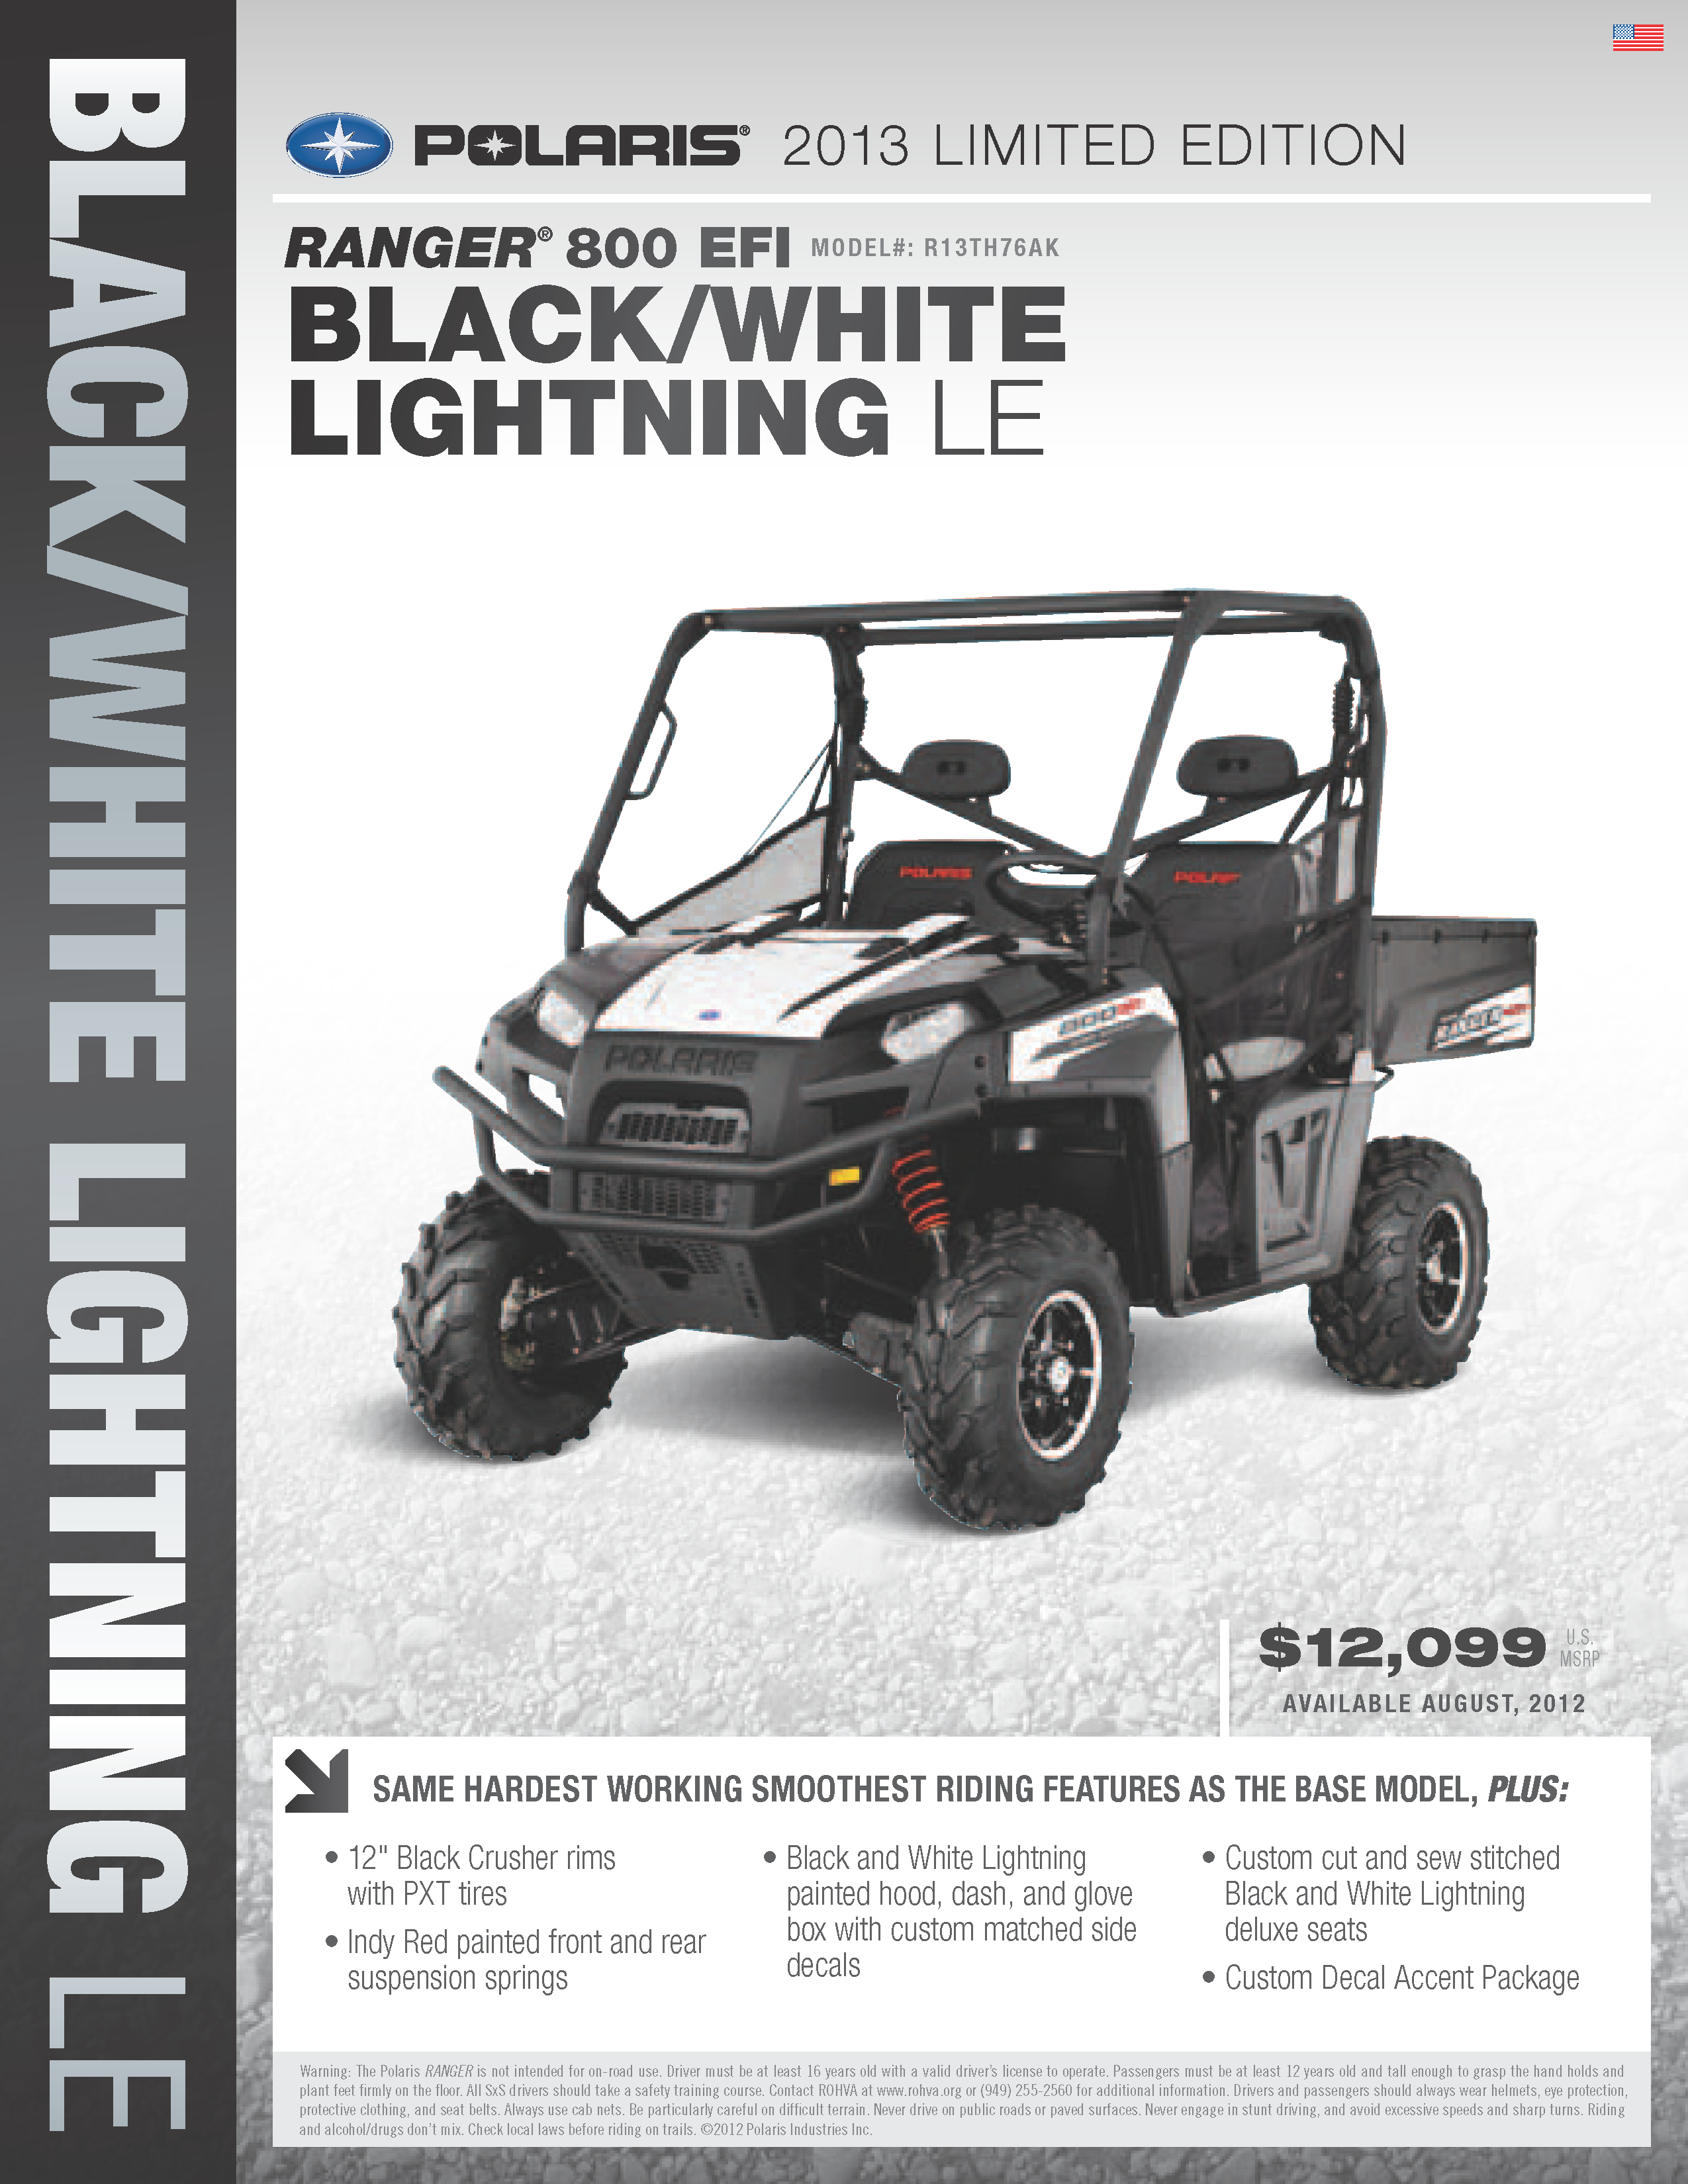 2013 Polaris Ranger XP 800 - black and white lightning